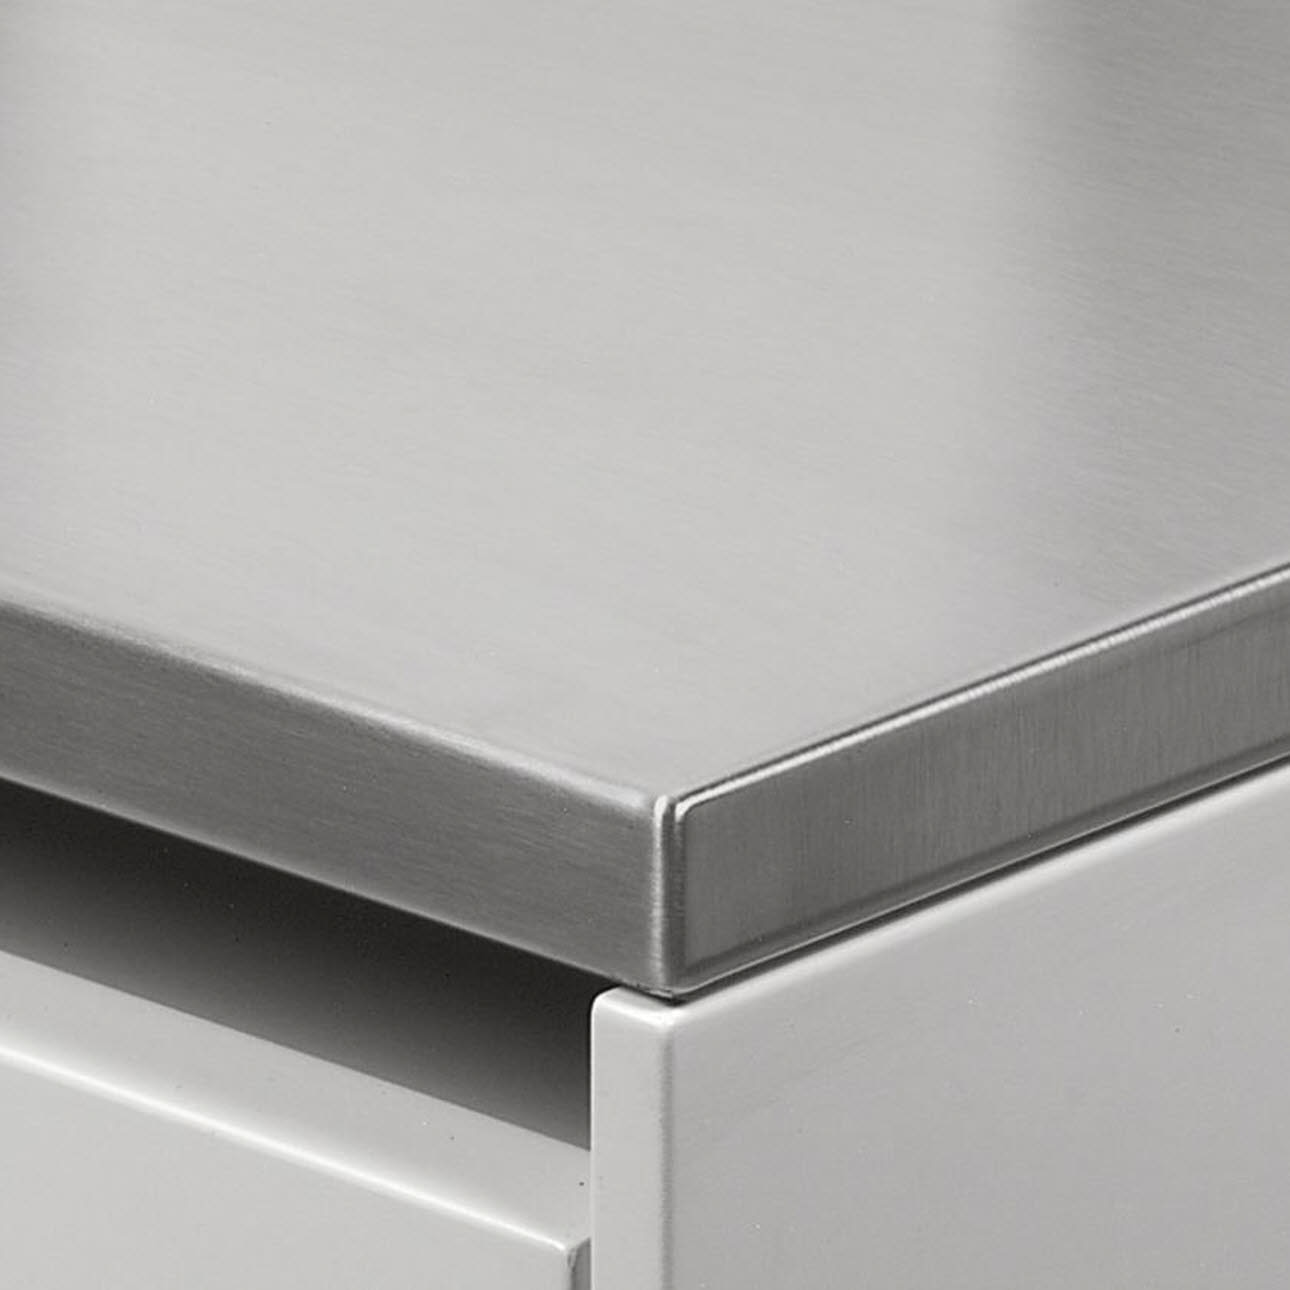 Thin worktop made of stainless steel